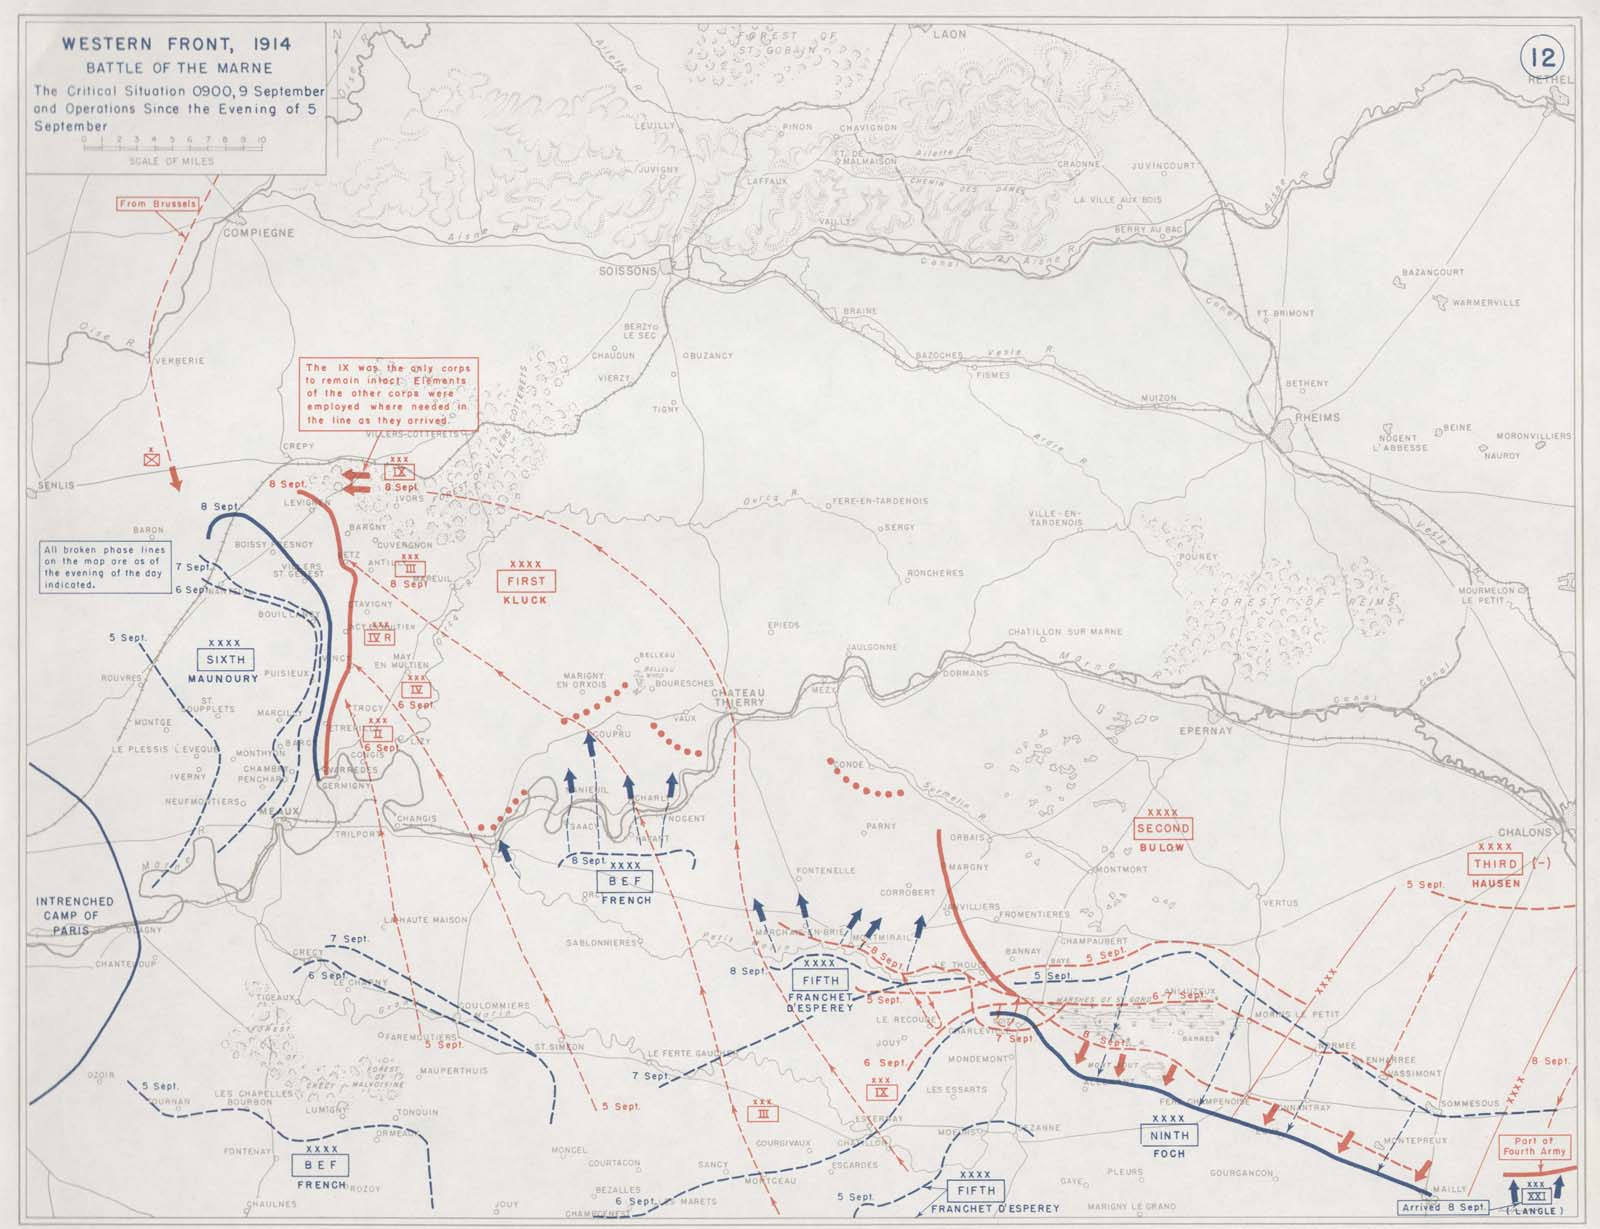 http://www.firstworldwar.com/maps/graphics/maps_12_marne1914_6_(1600).jpg